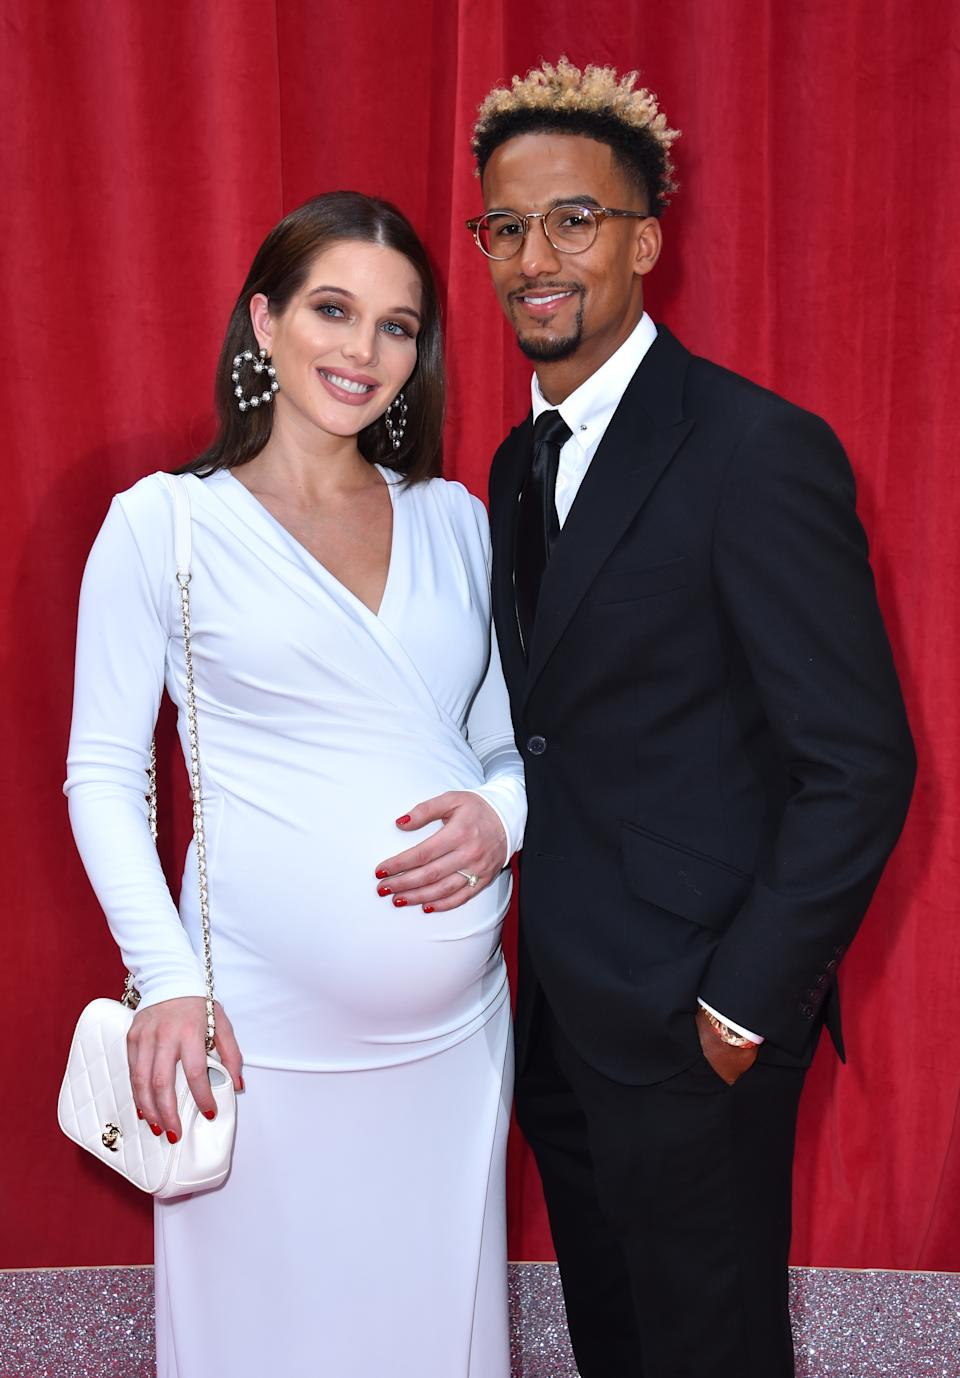 Helen Flanagan and Scott Sinclair attending the British Soap Awards 2018 held at The Hackney Empire, London. PRESS ASSOCIATION Photo. Picture date: Saturday June 2, 2018. See PA story SHOWBIZ Soap Awards. Photo credit should read: Matt Crossick/PA Wire (Photo by Matt Crossick/PA Images via Getty Images)